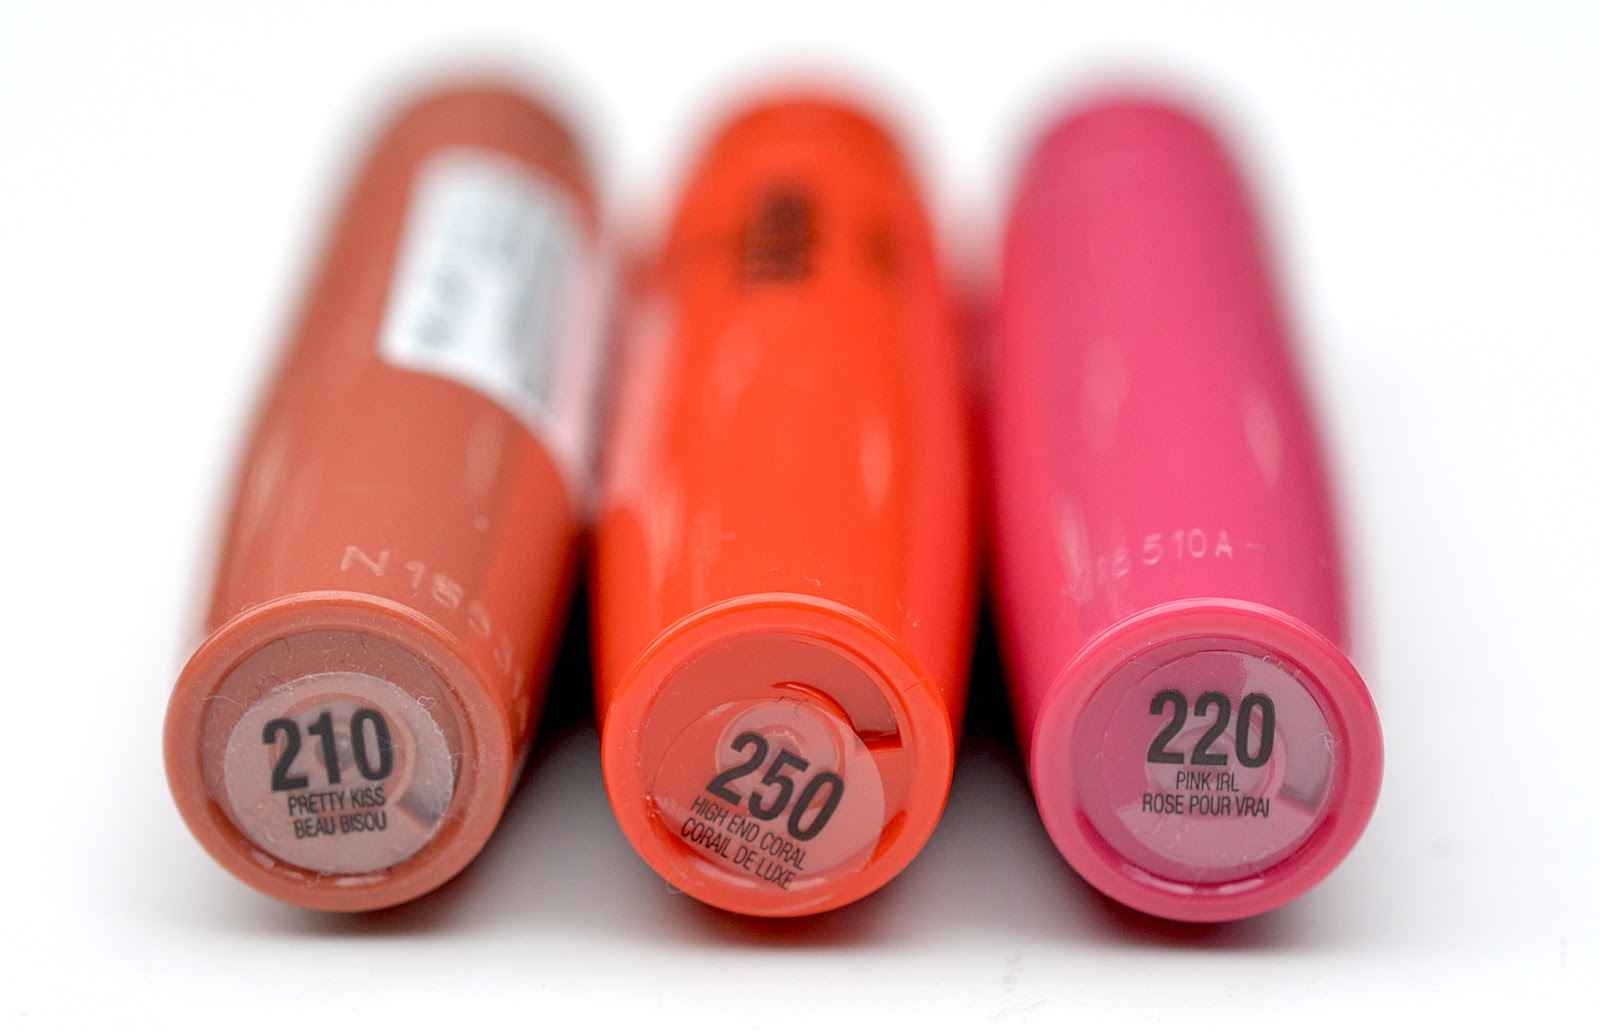 Relvon Kiss Cushion Lip Review